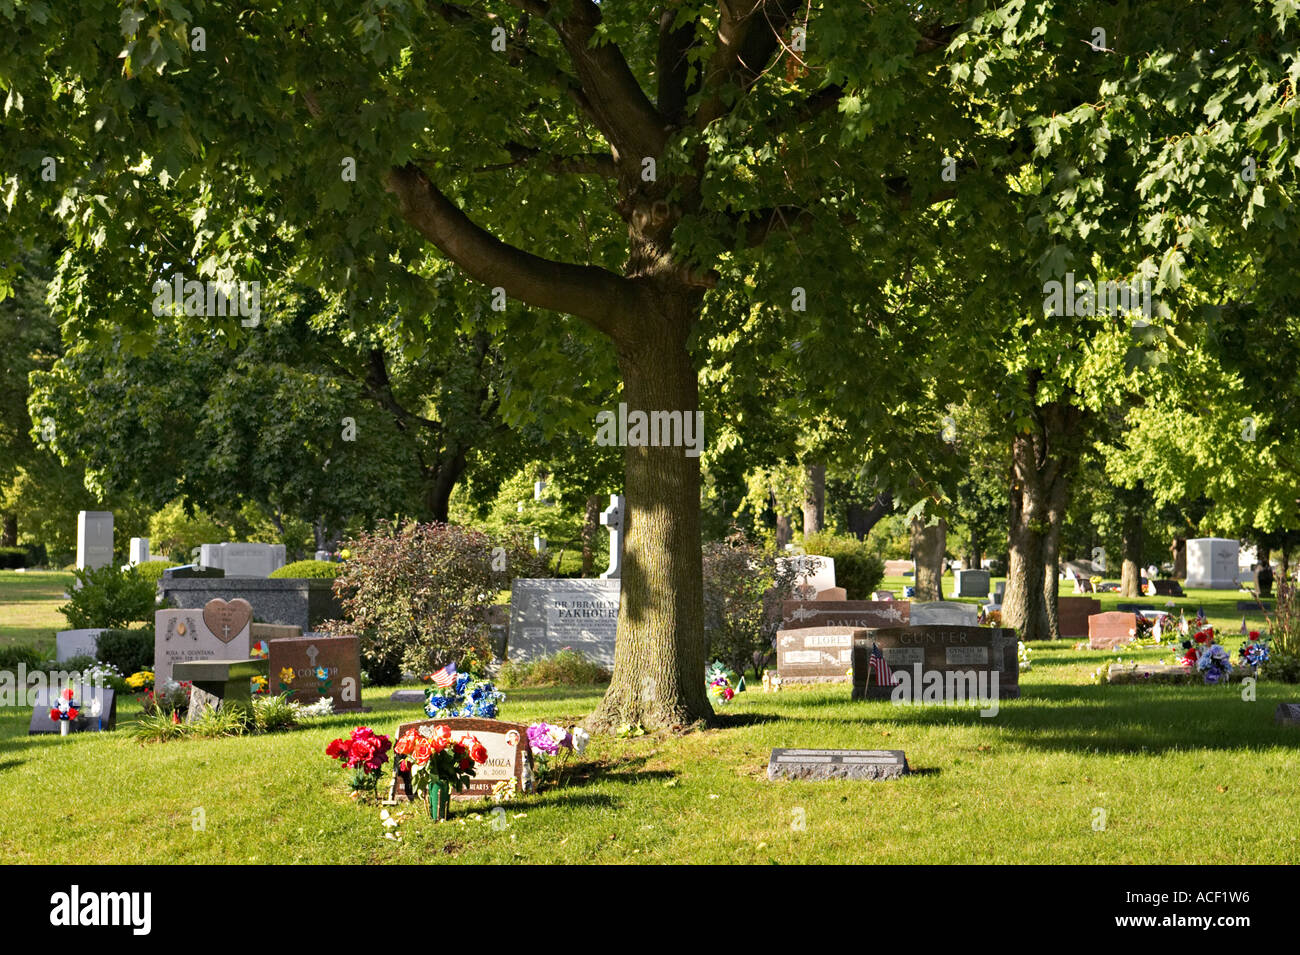 STREET SCENE Chicago Illinois Graves under tree in Rosehill Cemetery largest cemetery in Chicago - Stock Image